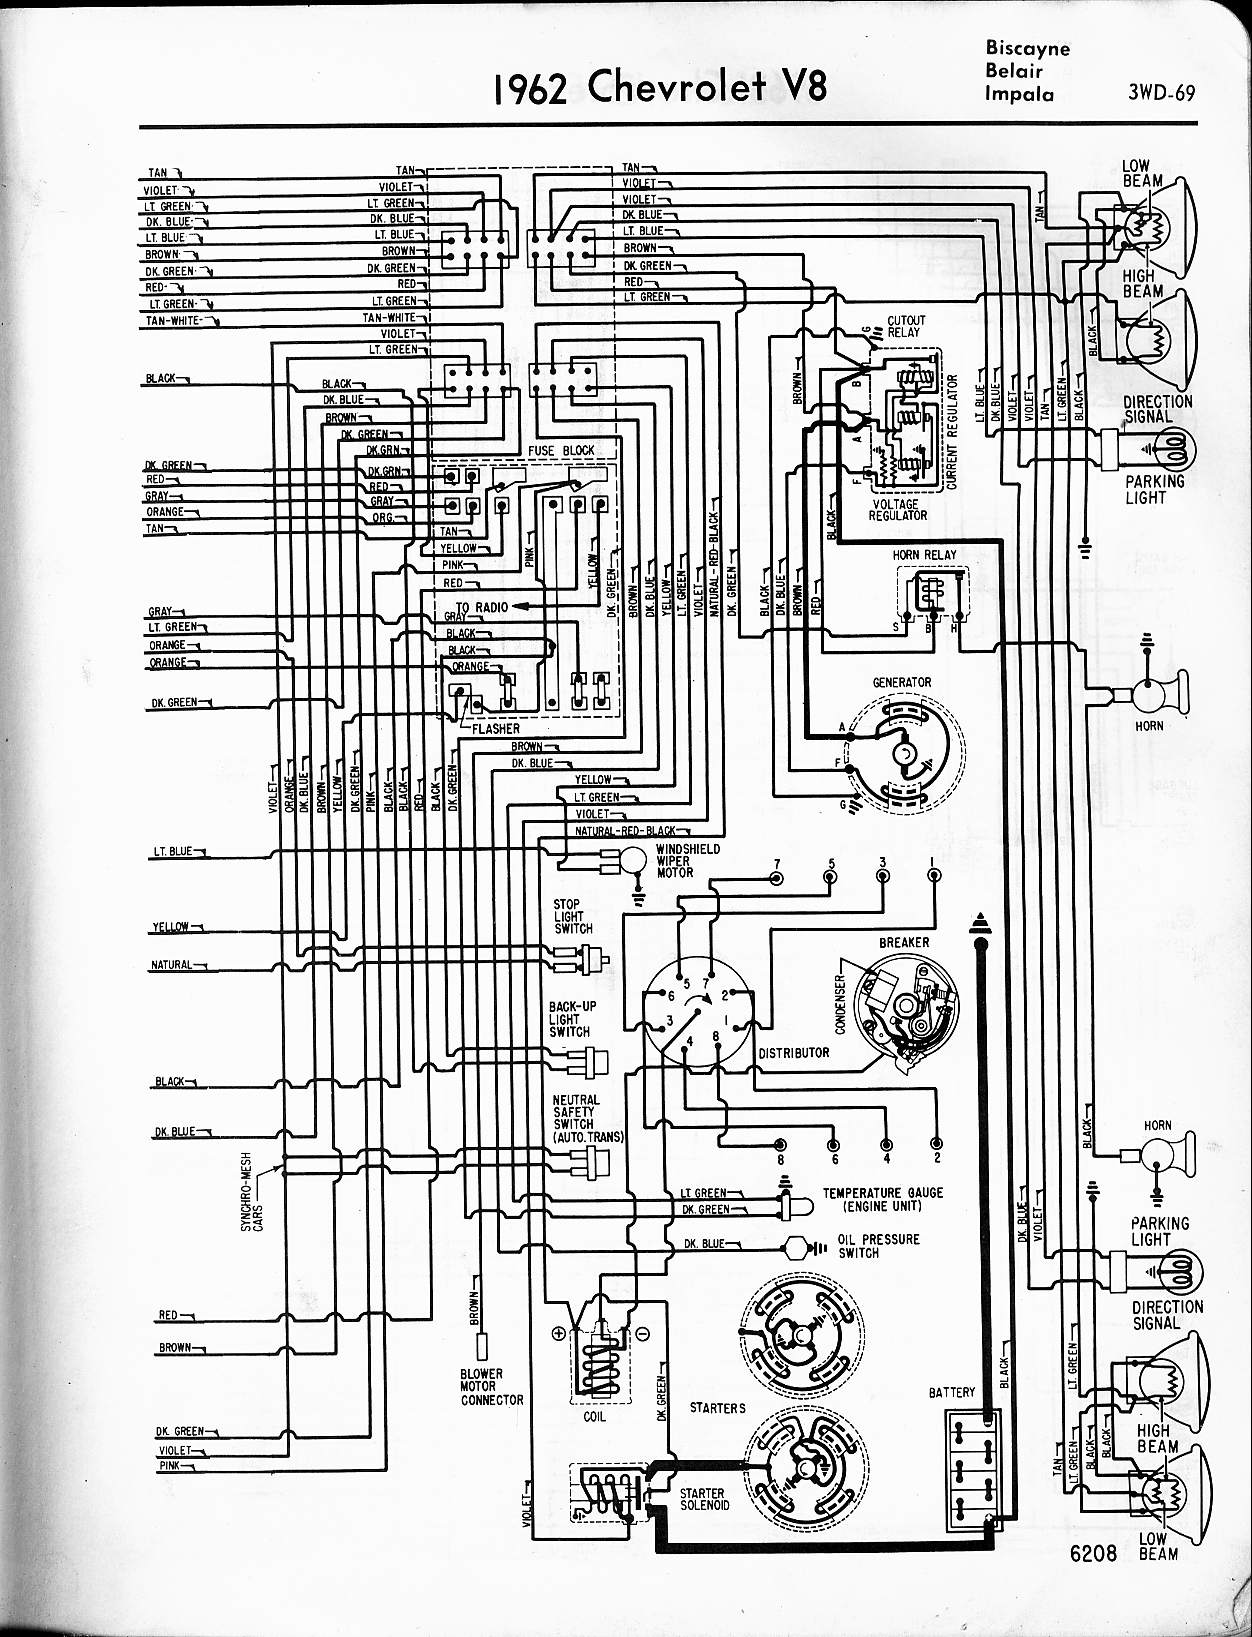 301337 on 57 chevy headlight switch wiring diagram